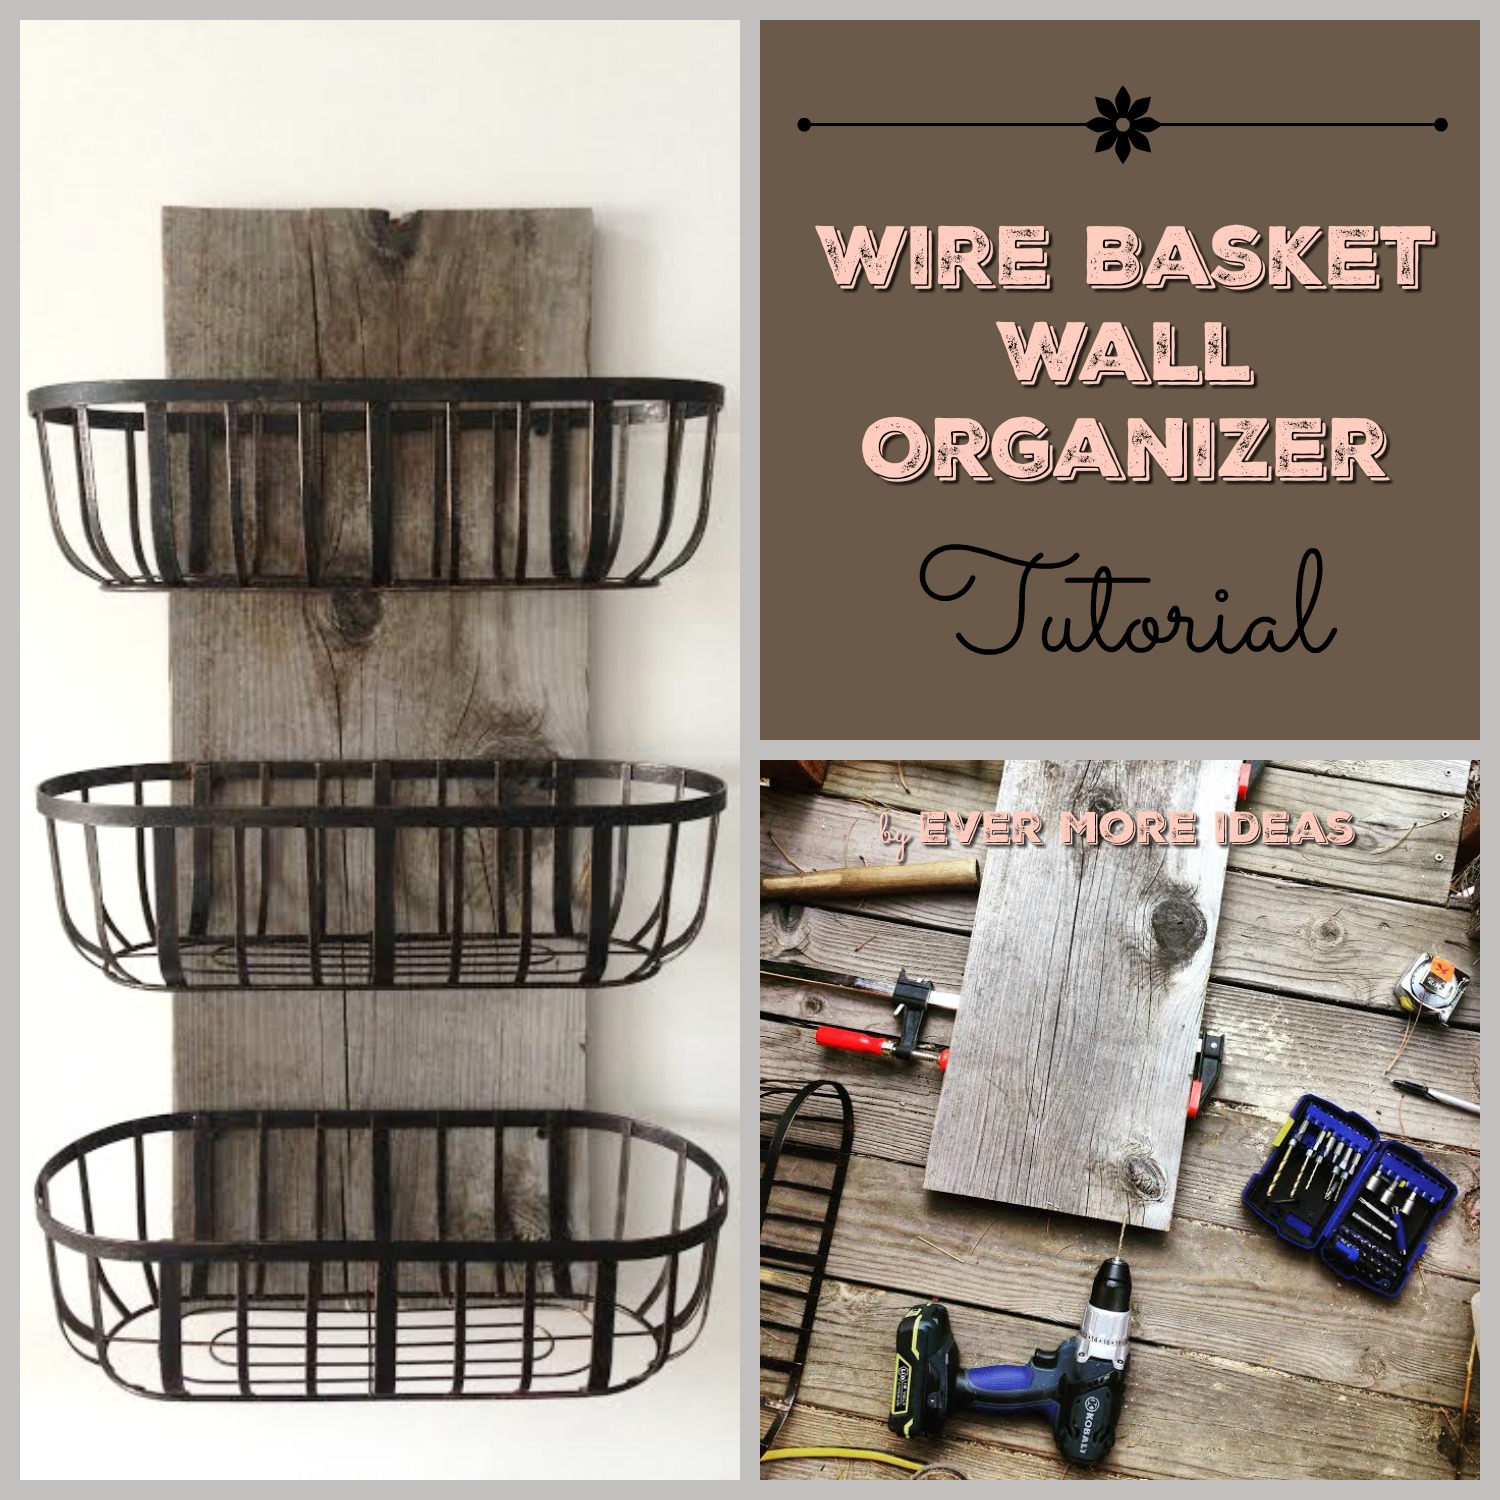 kitchen basket storage damascus steel knives wire baskets organizer diy girls build club